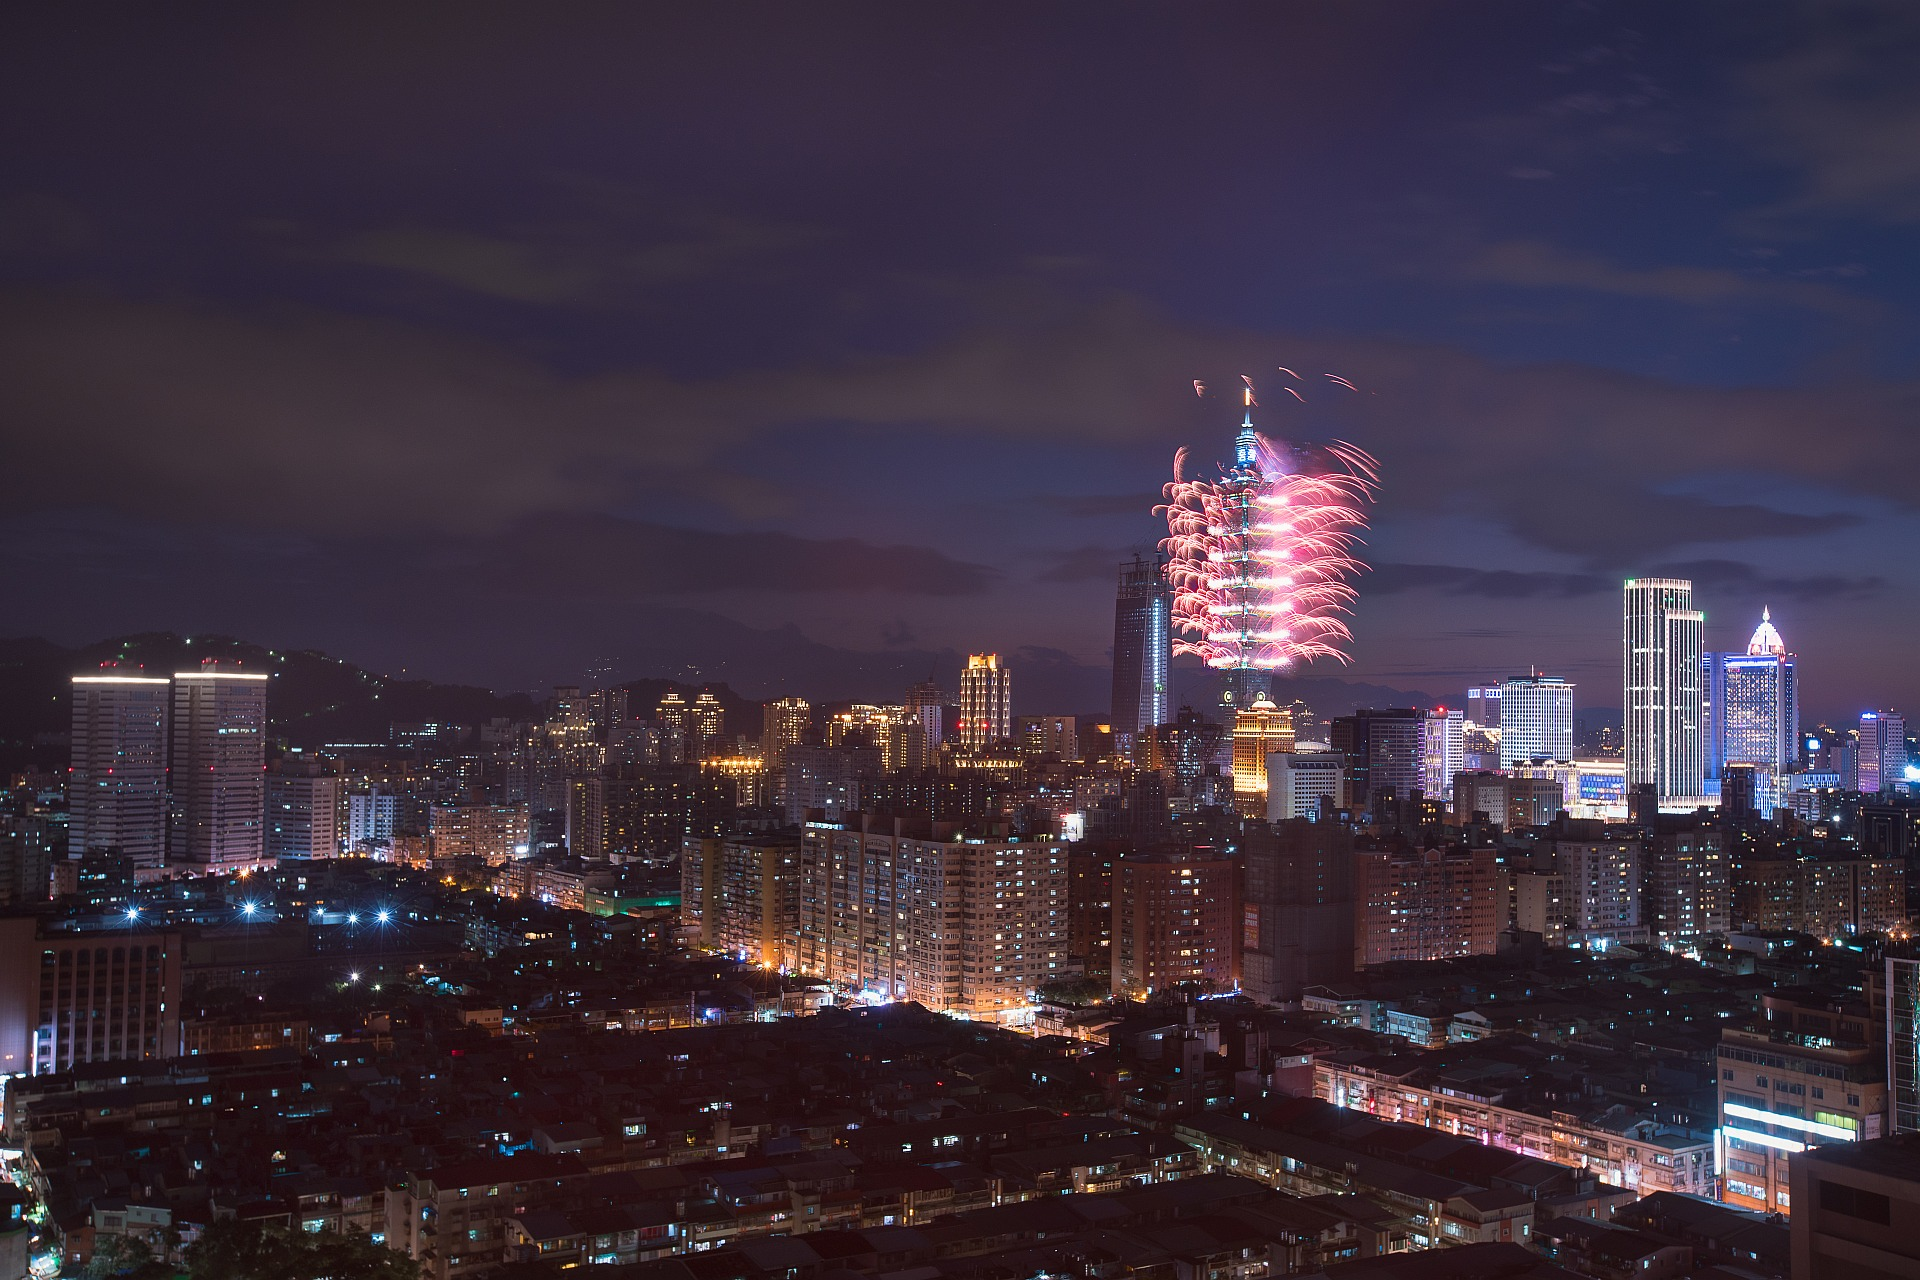 amba Taipei Songshan Hotel 2020-2021 New Year Holiday with Stunning Fireworks